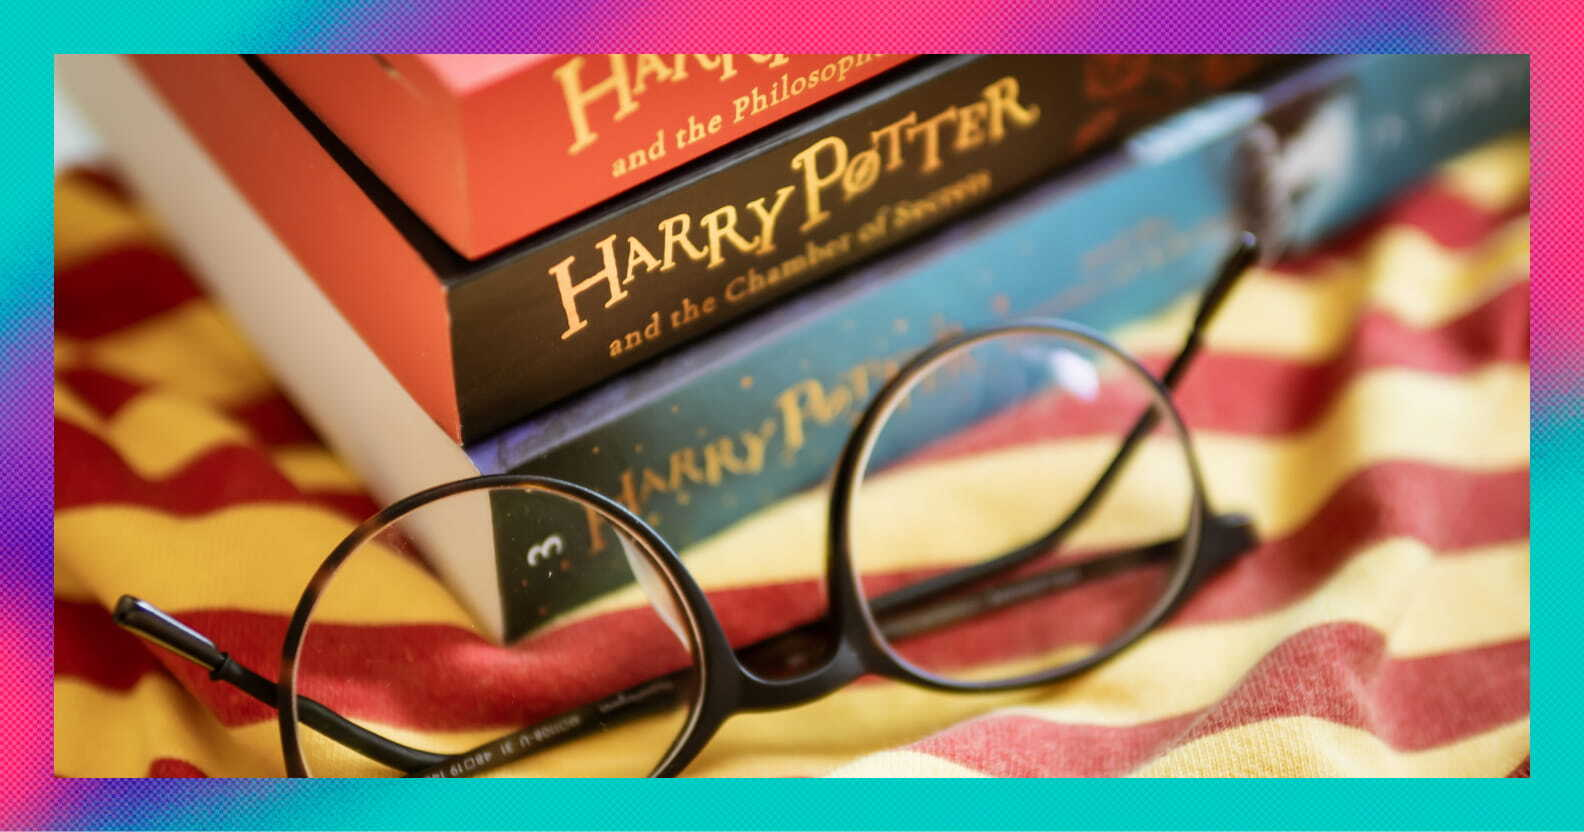 Harry Potter's publisher cleans up